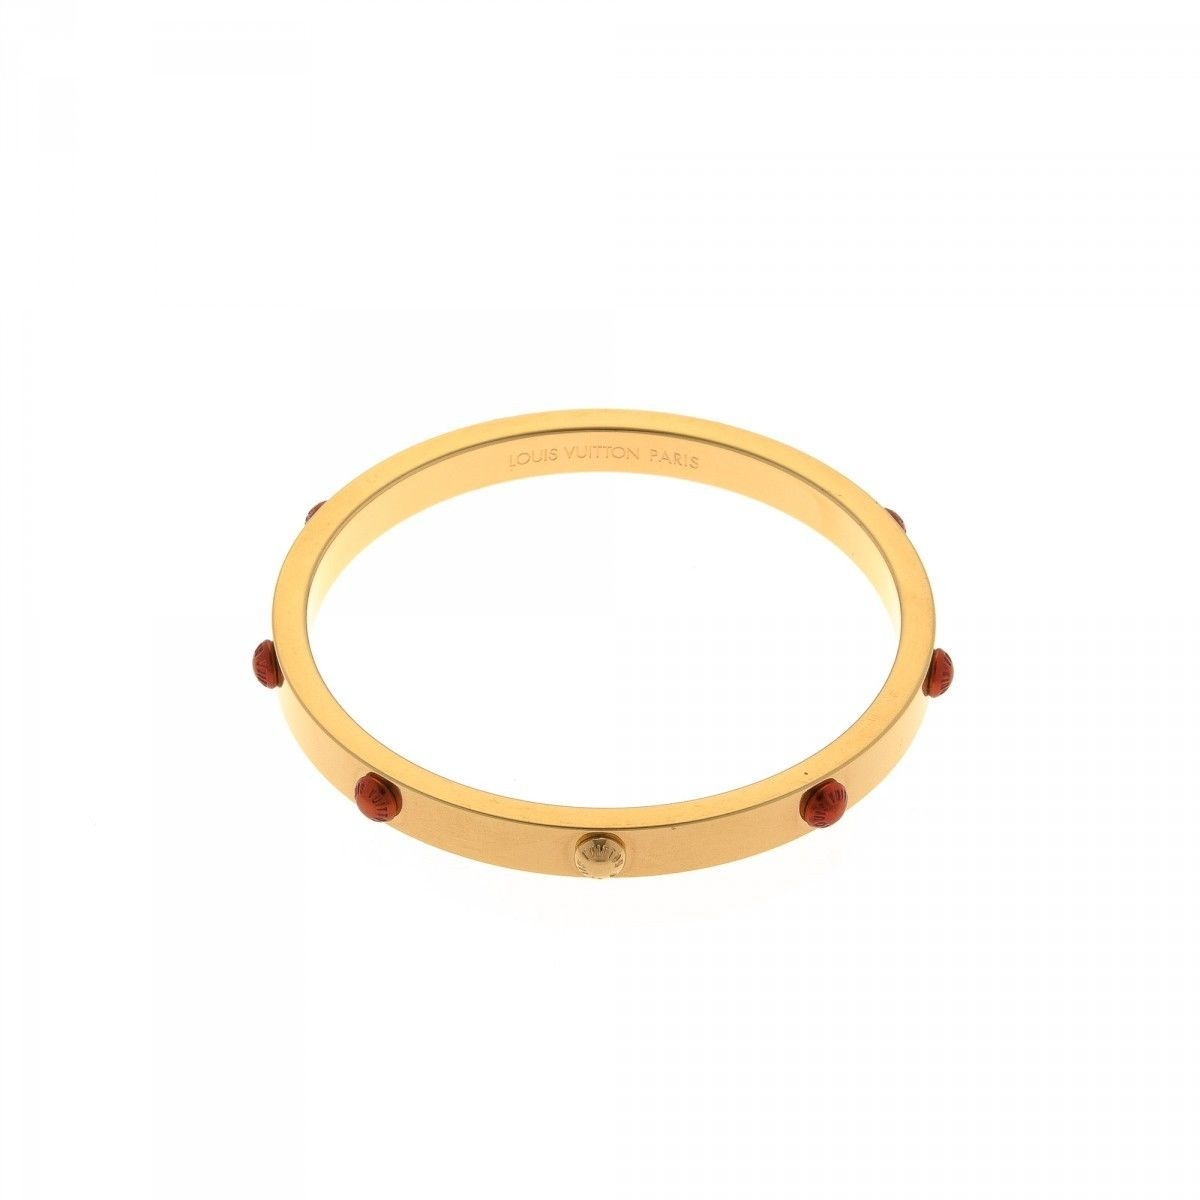 wholesale cuff for item screw shackle bangle borasi bangles stainless women bracelet color in jewelry from gold rose love steel bracelets fashion